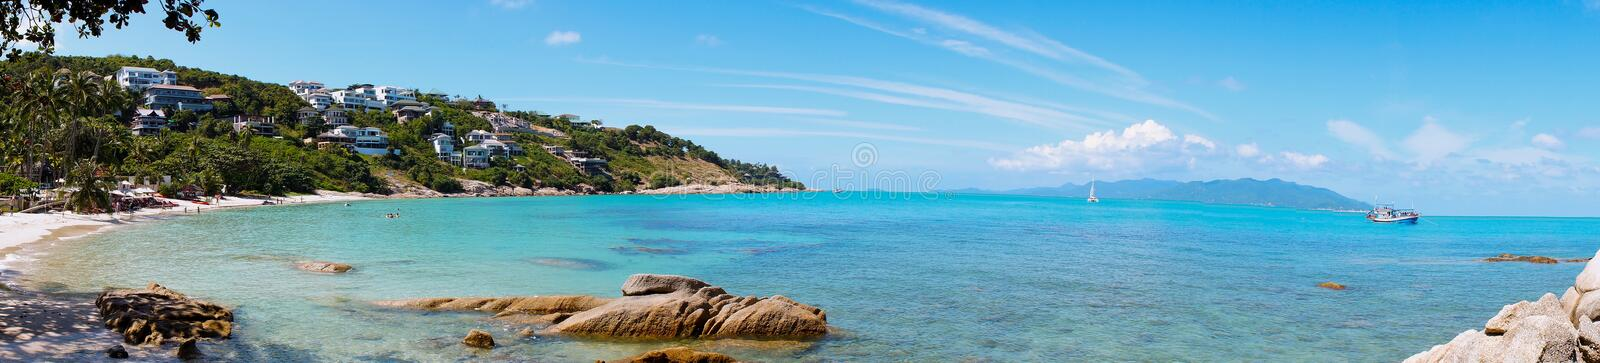 Rocky beach in Koh Samui, Thailand royalty free stock image